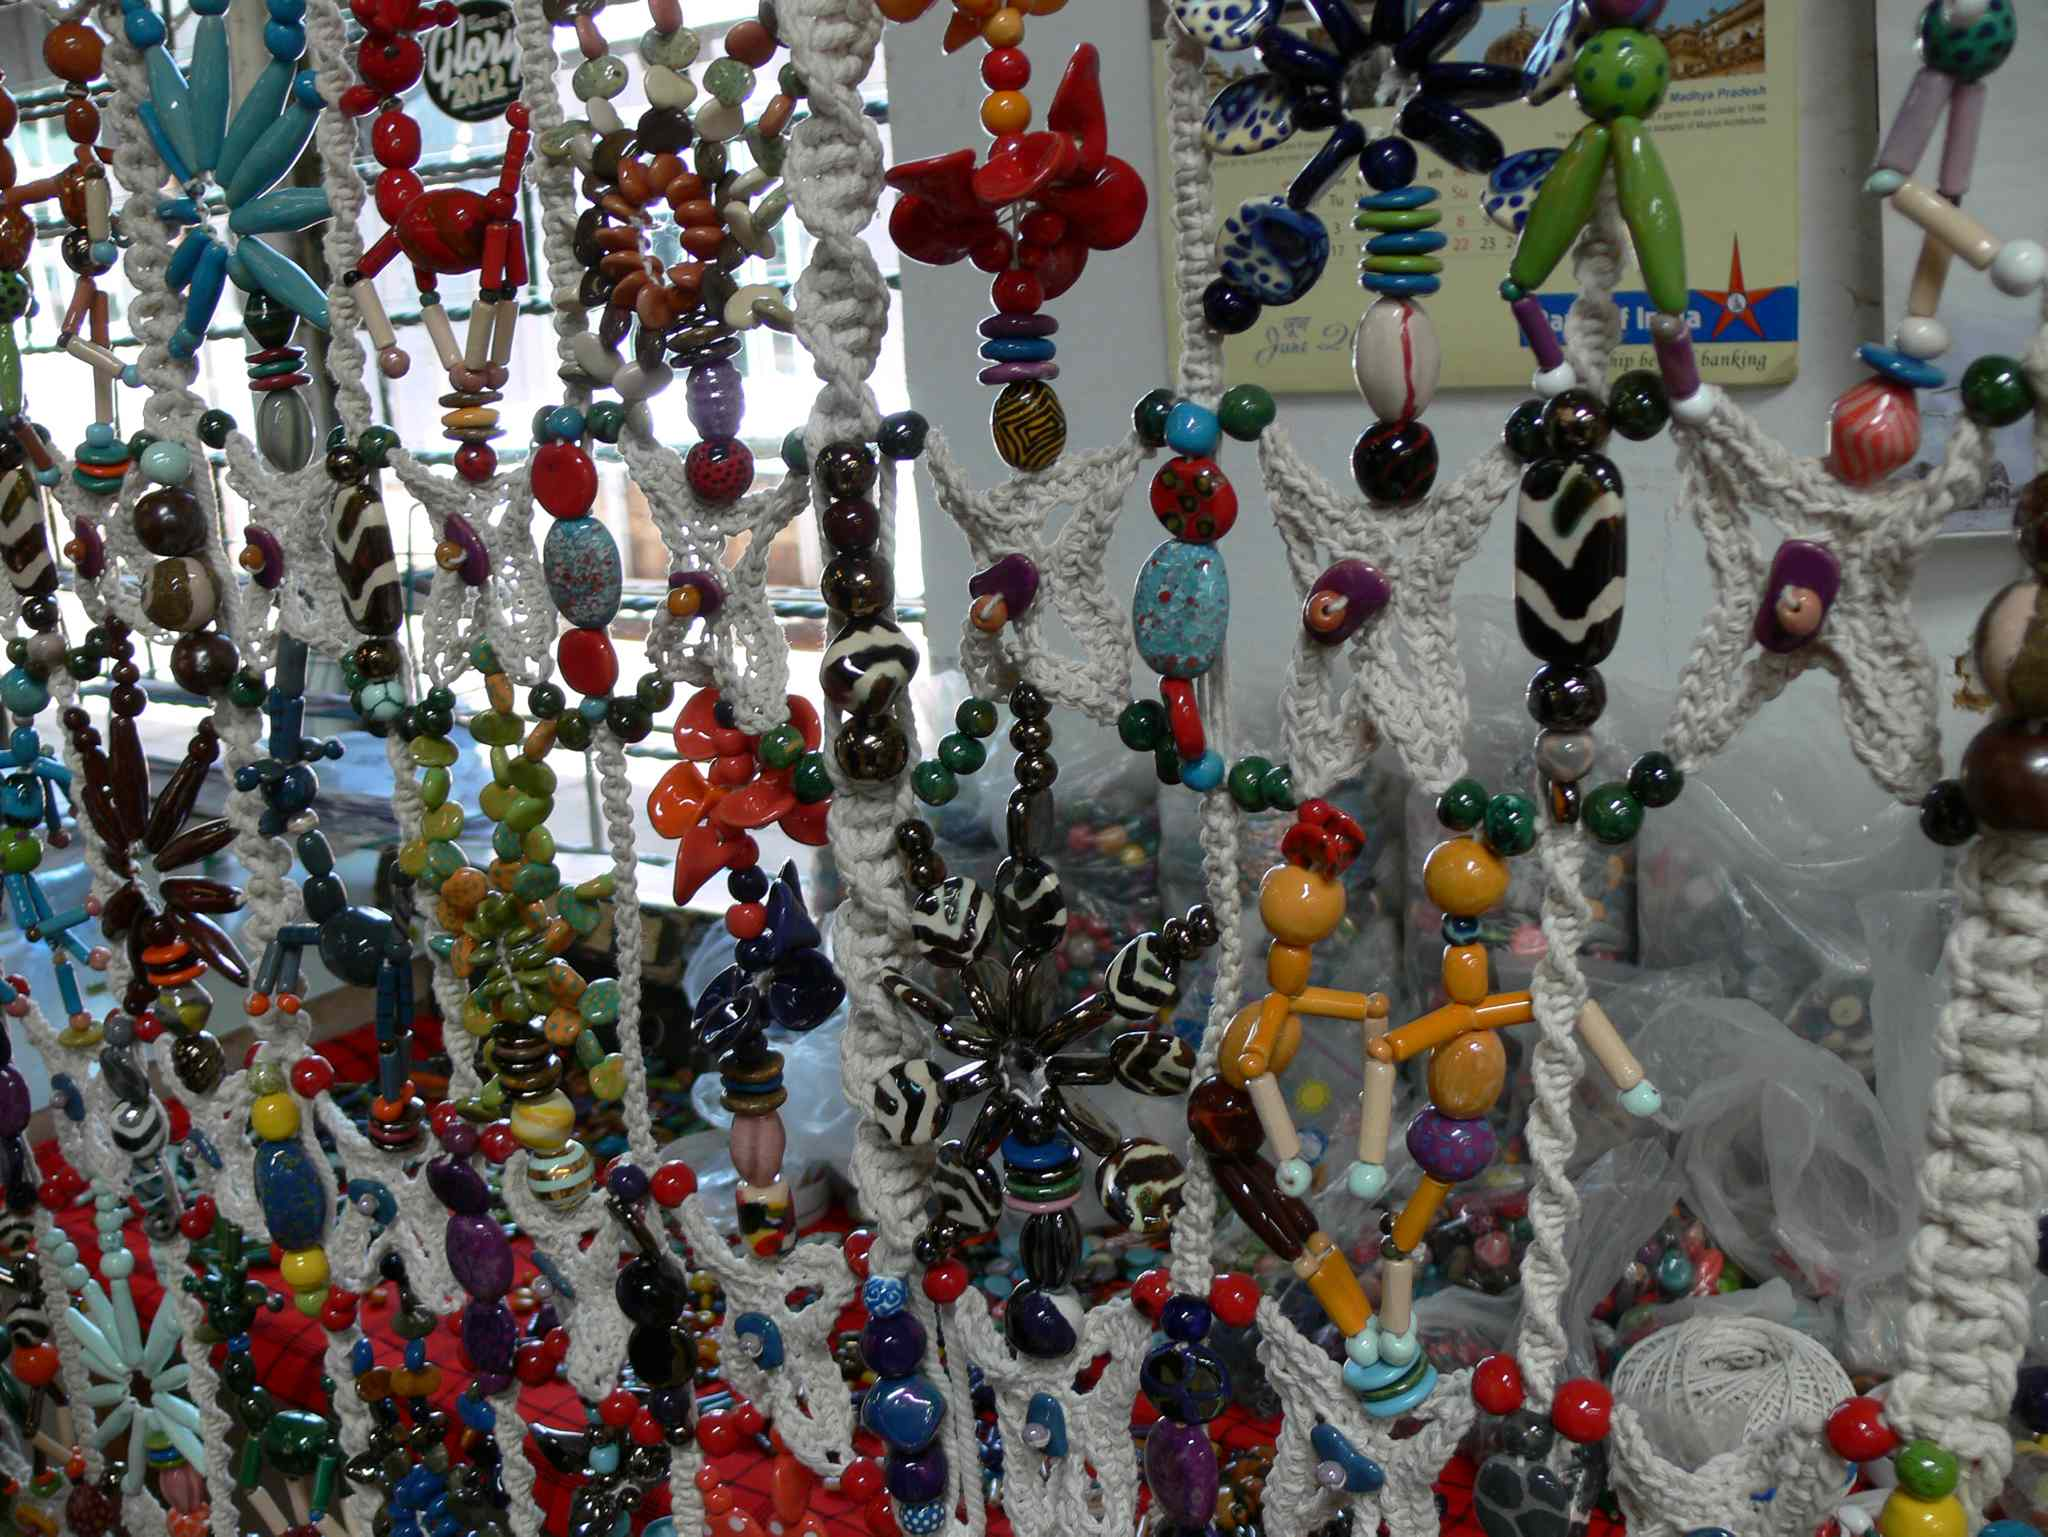 A wall hanging made of ceramic beads for sale in the Kazuri gift store.